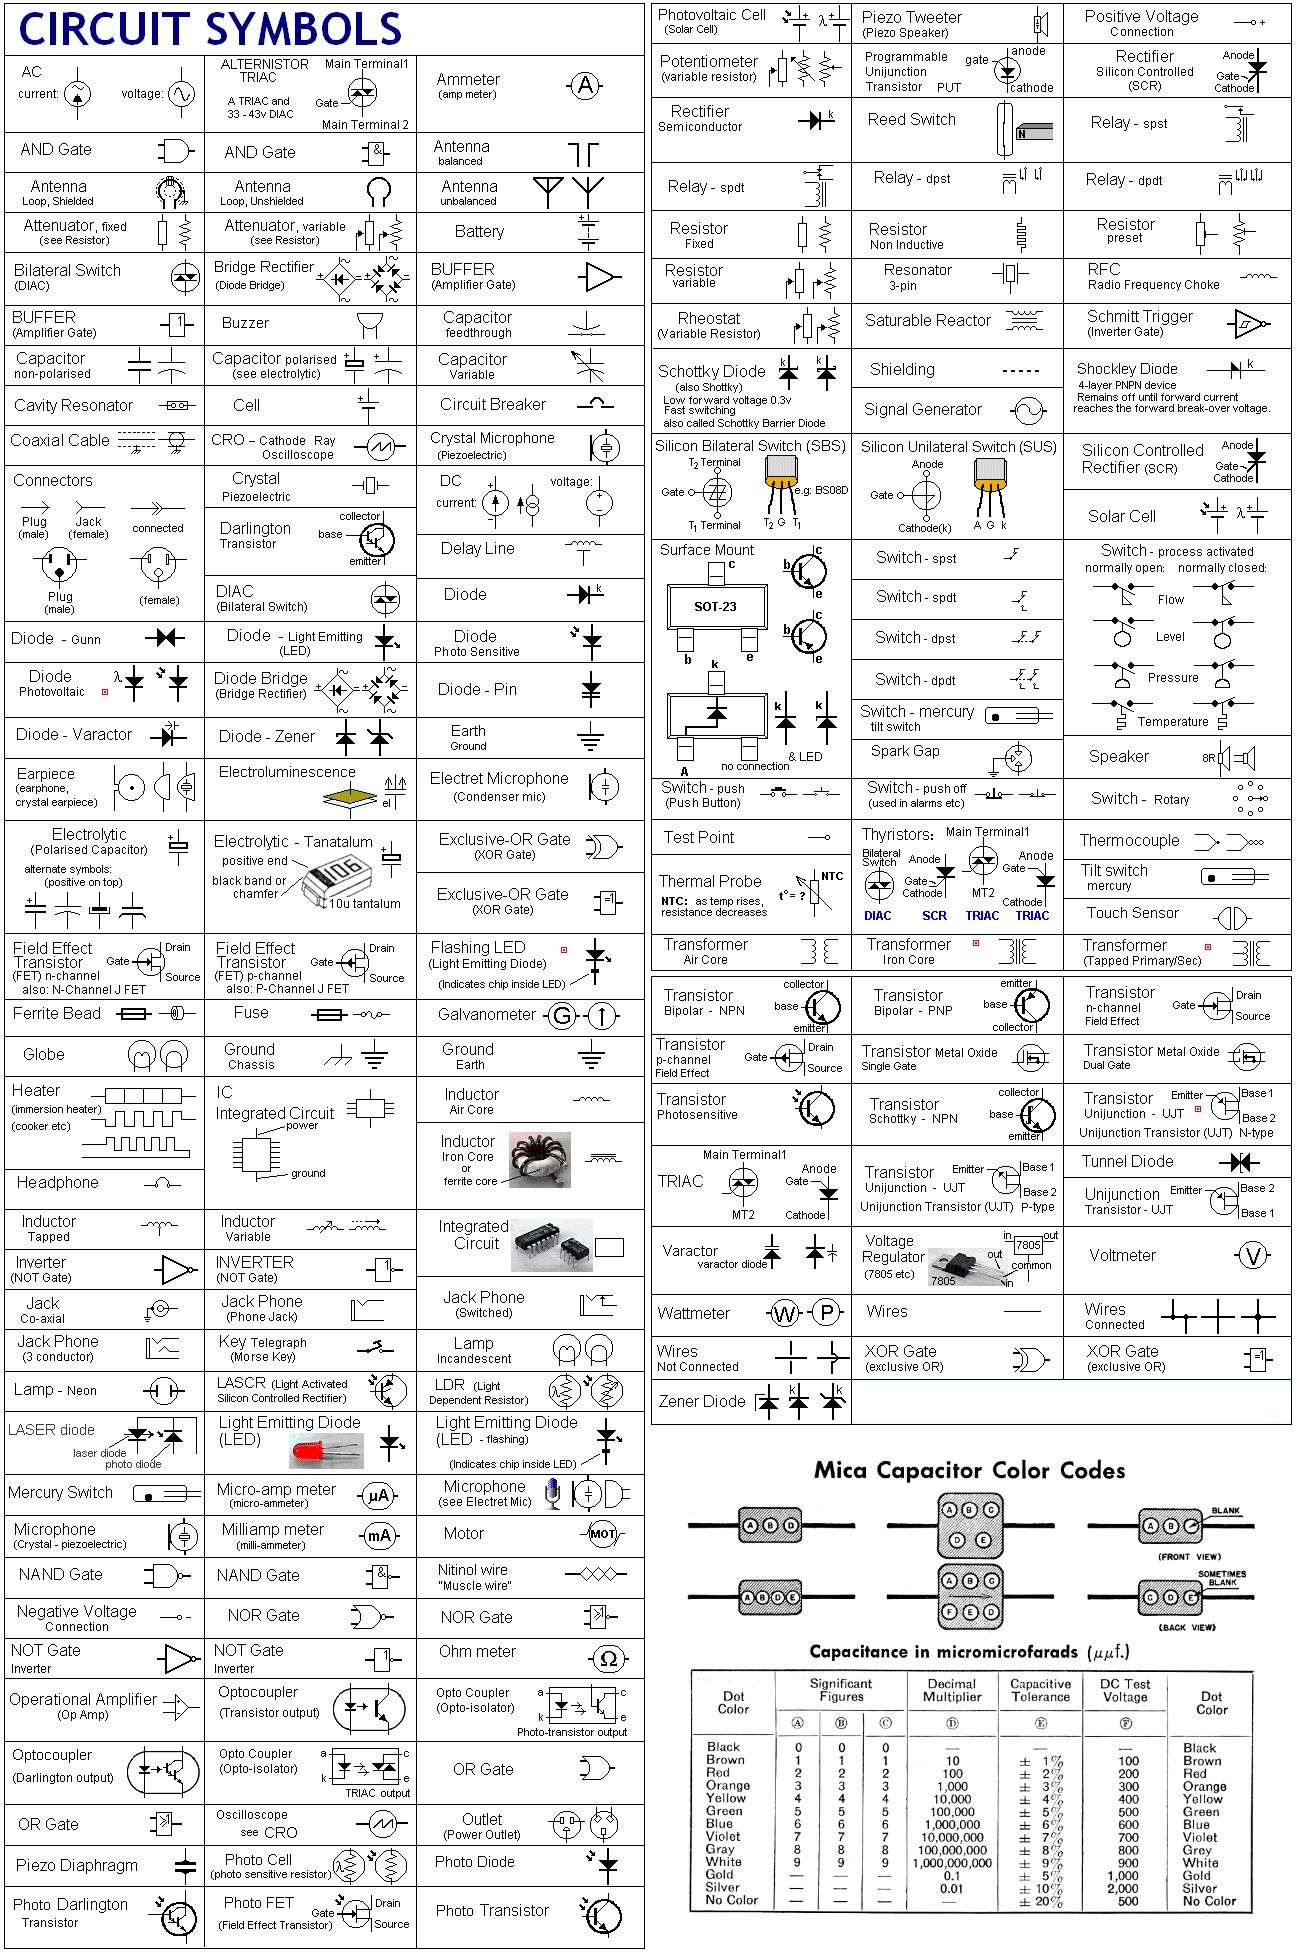 Schematic Symbols Chart | Electric Circuit Symbols: a considerably complete  alphabetized table .